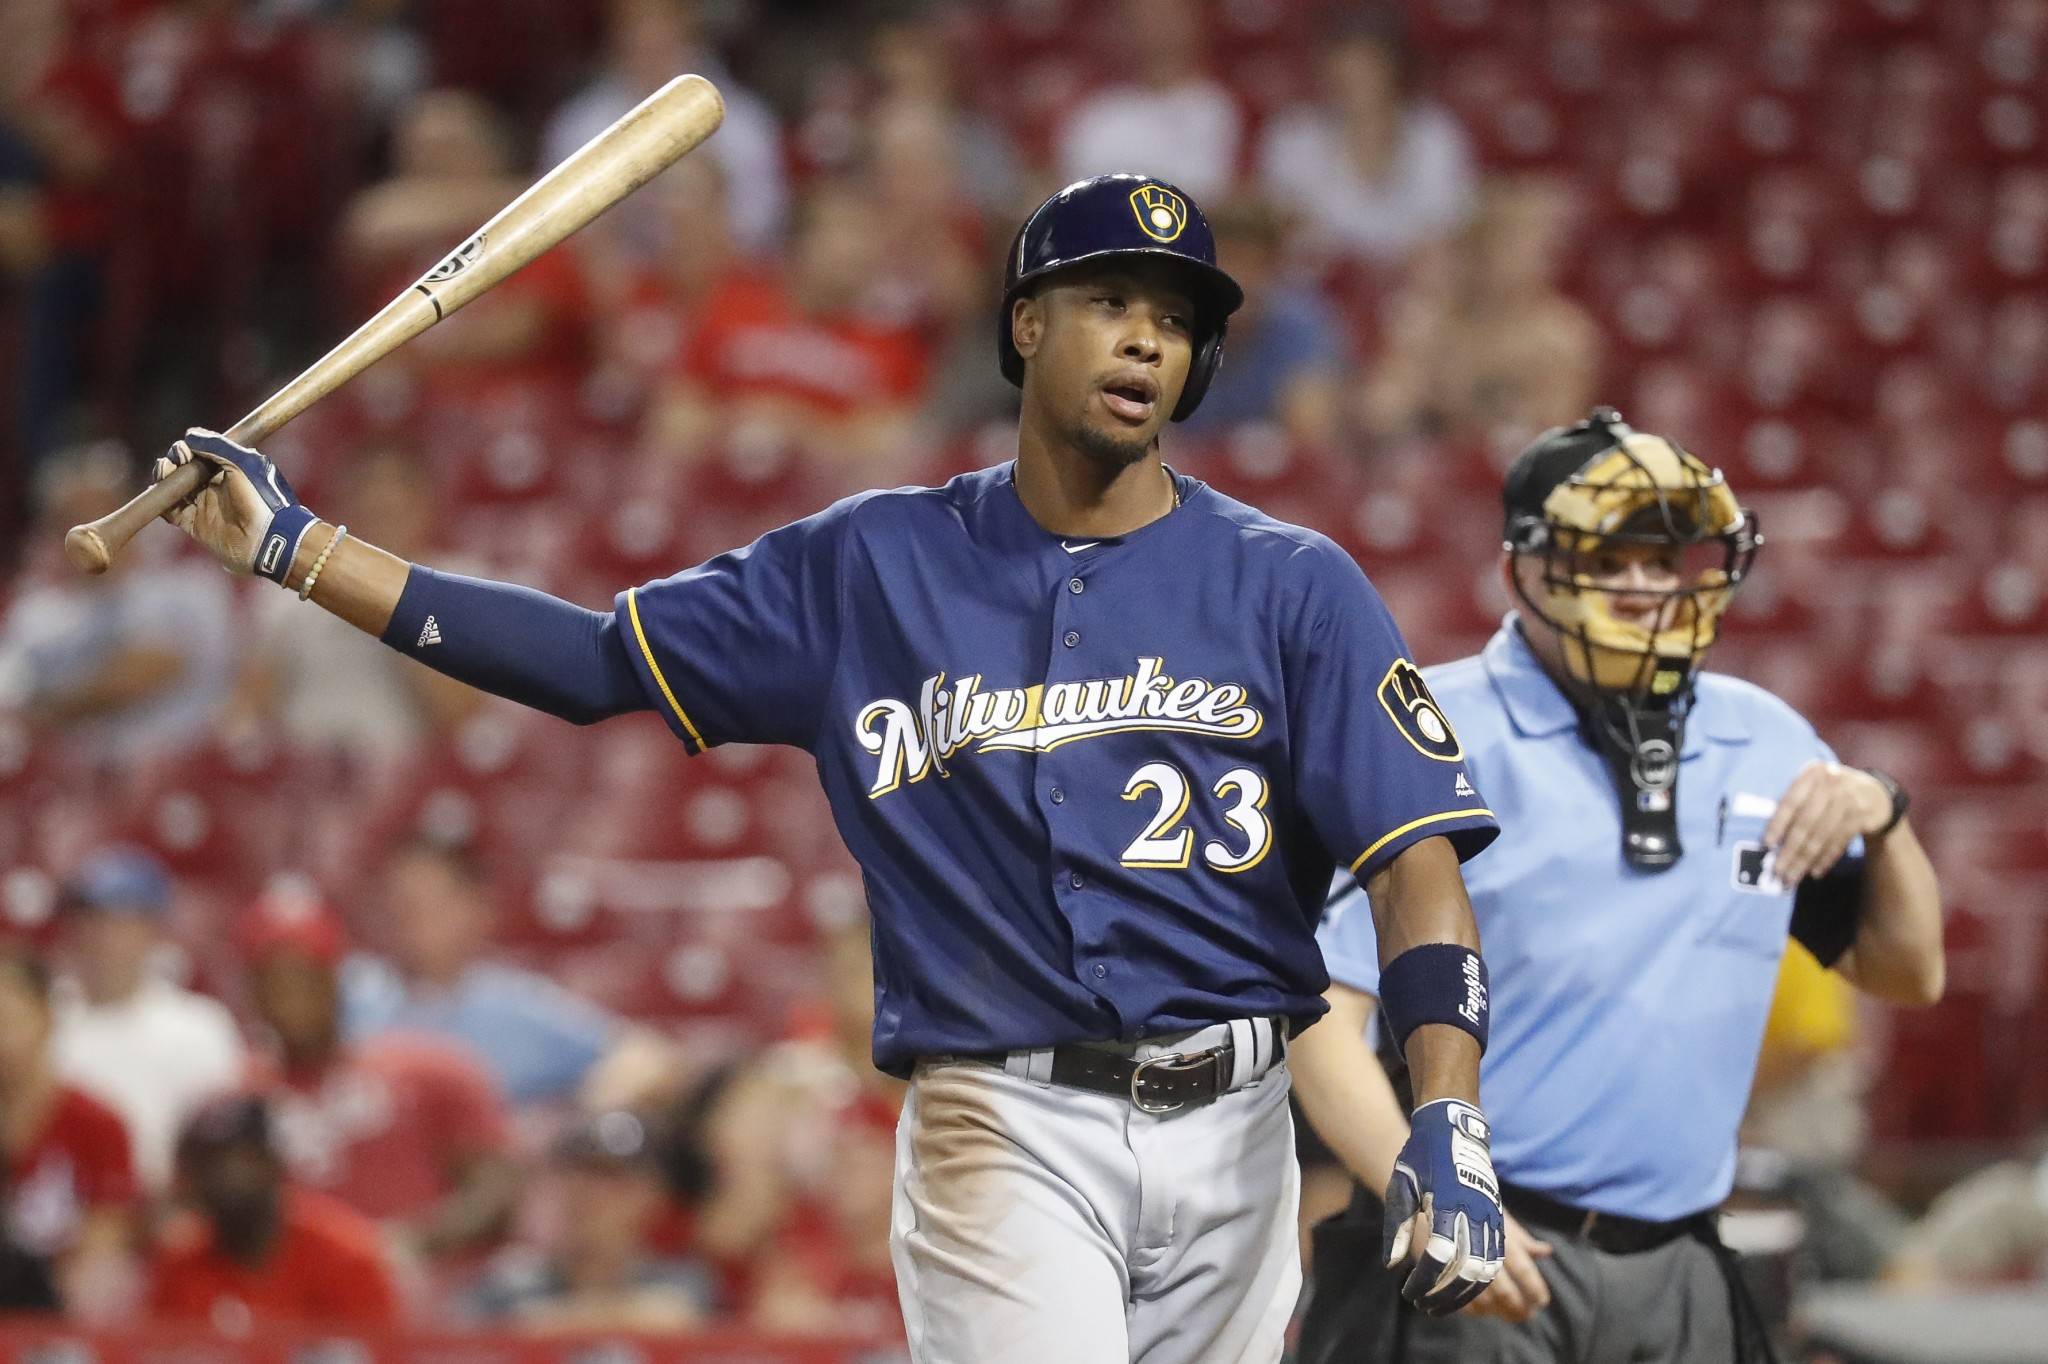 Brewers outfielder arrested after confrontation with police